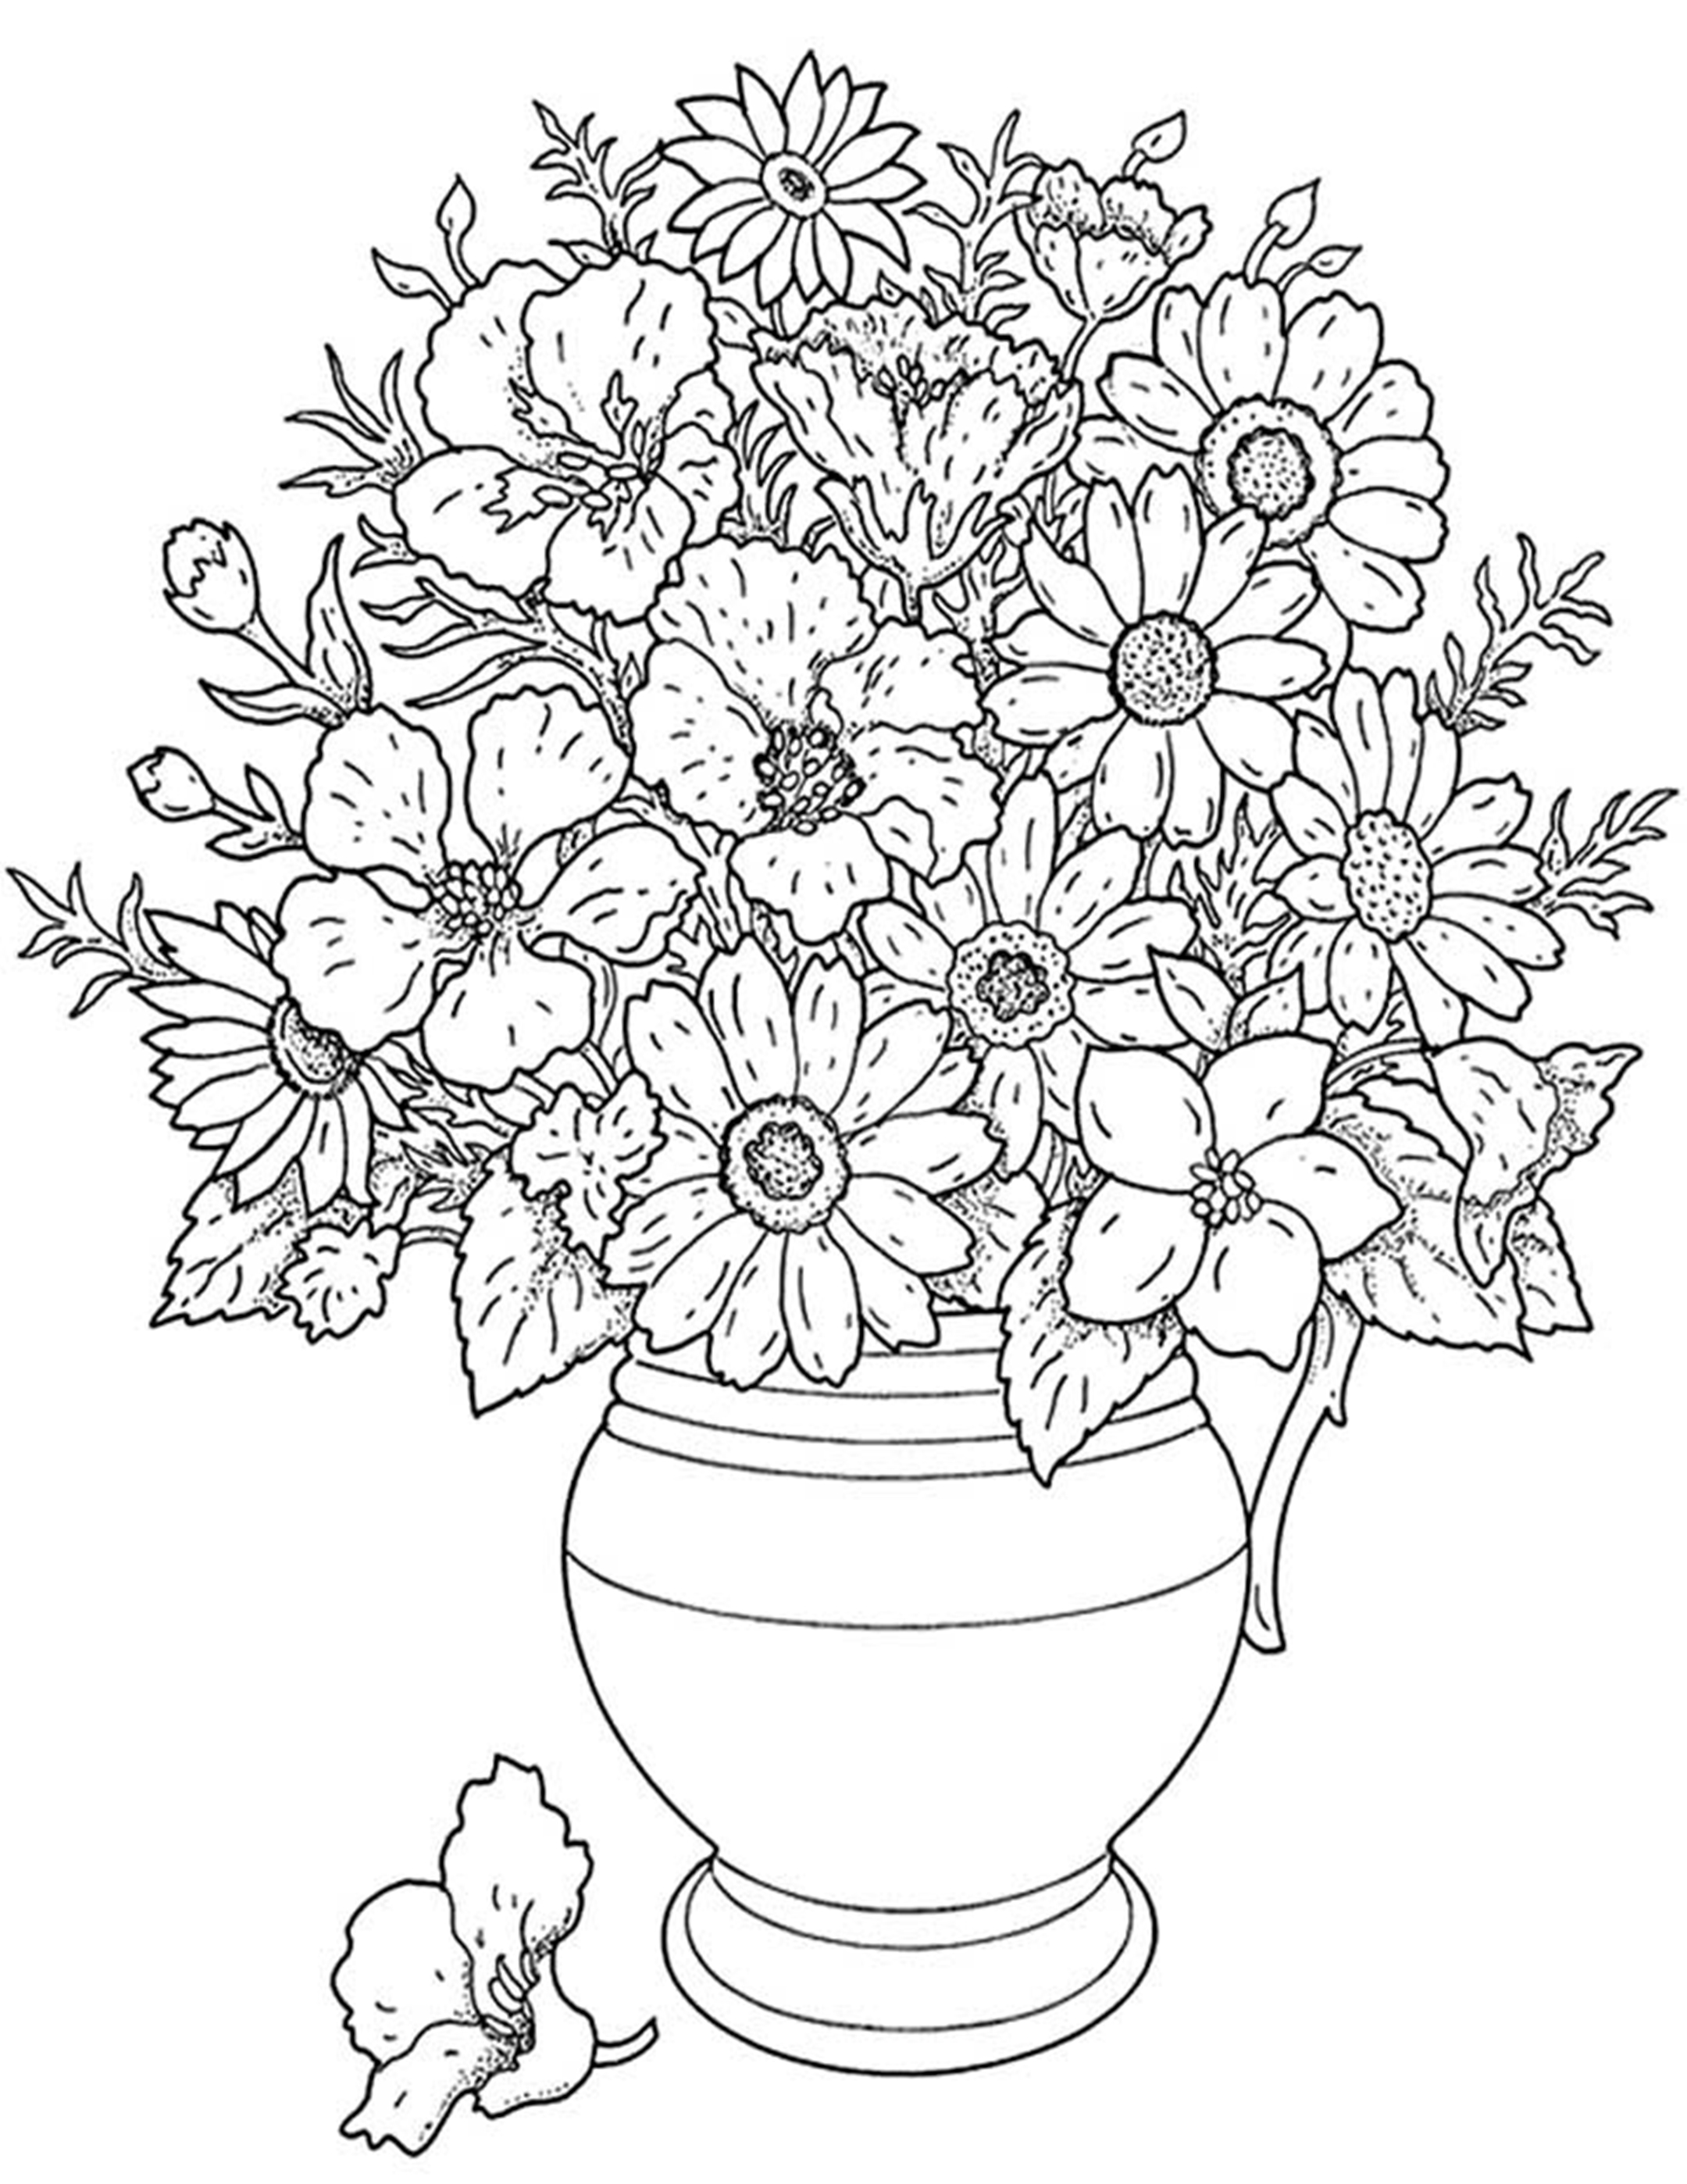 free printable flower coloring pages free rainforest coloring pages free coloring pages free coloring pages printable flower